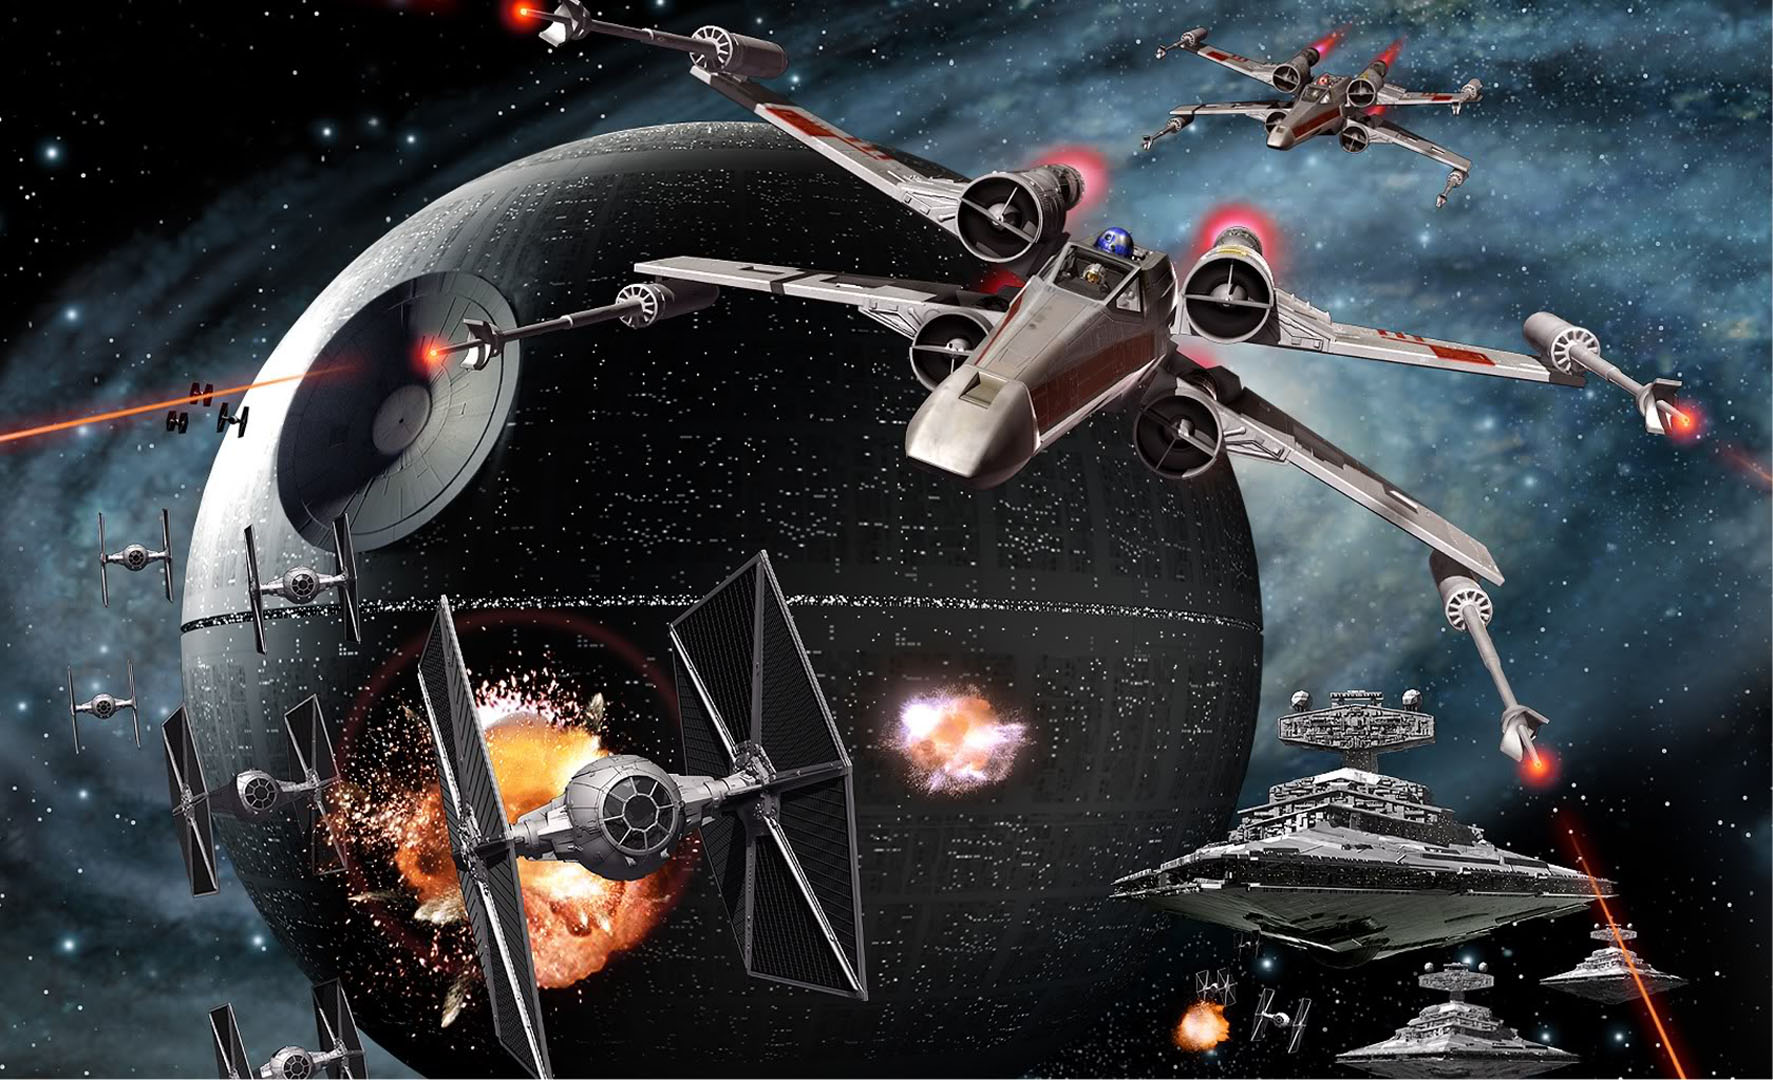 x wings and tie fighters